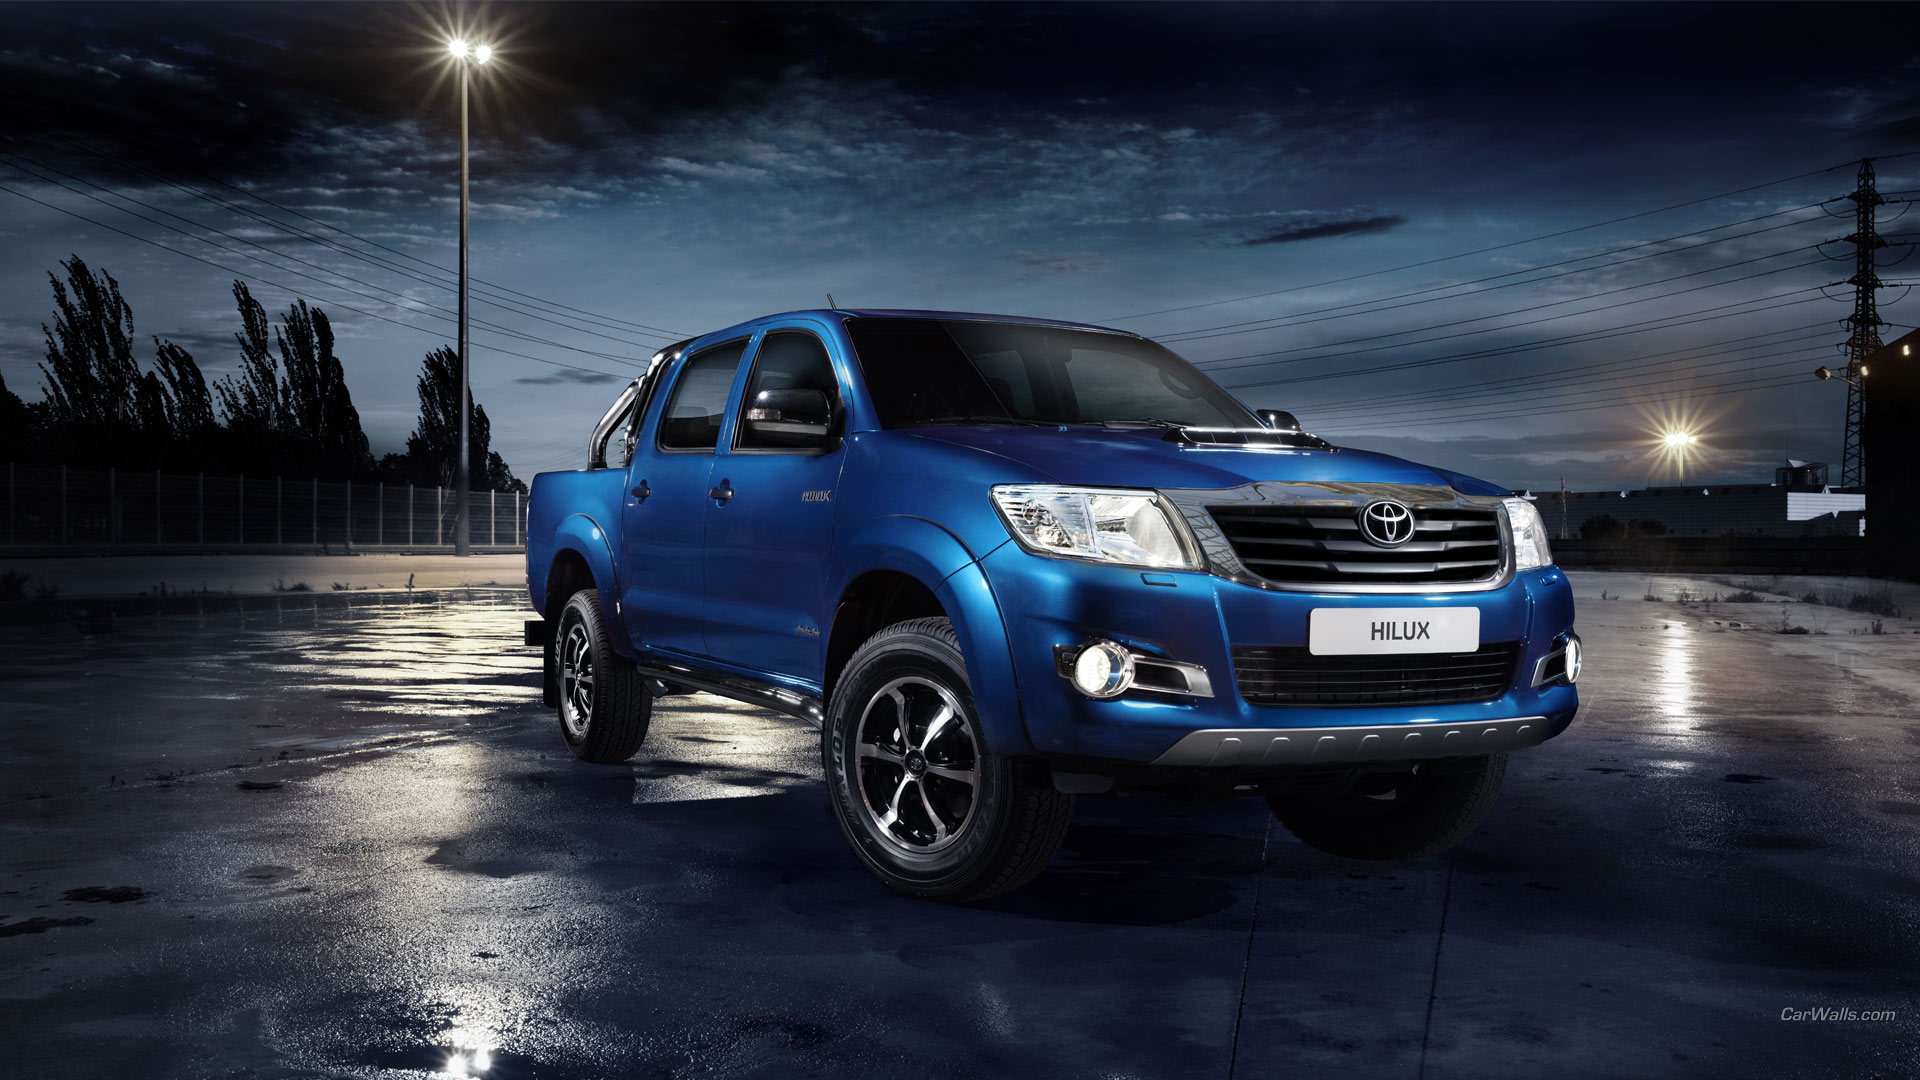 Toyota Hilux Full HD Wallpaper And Background Image